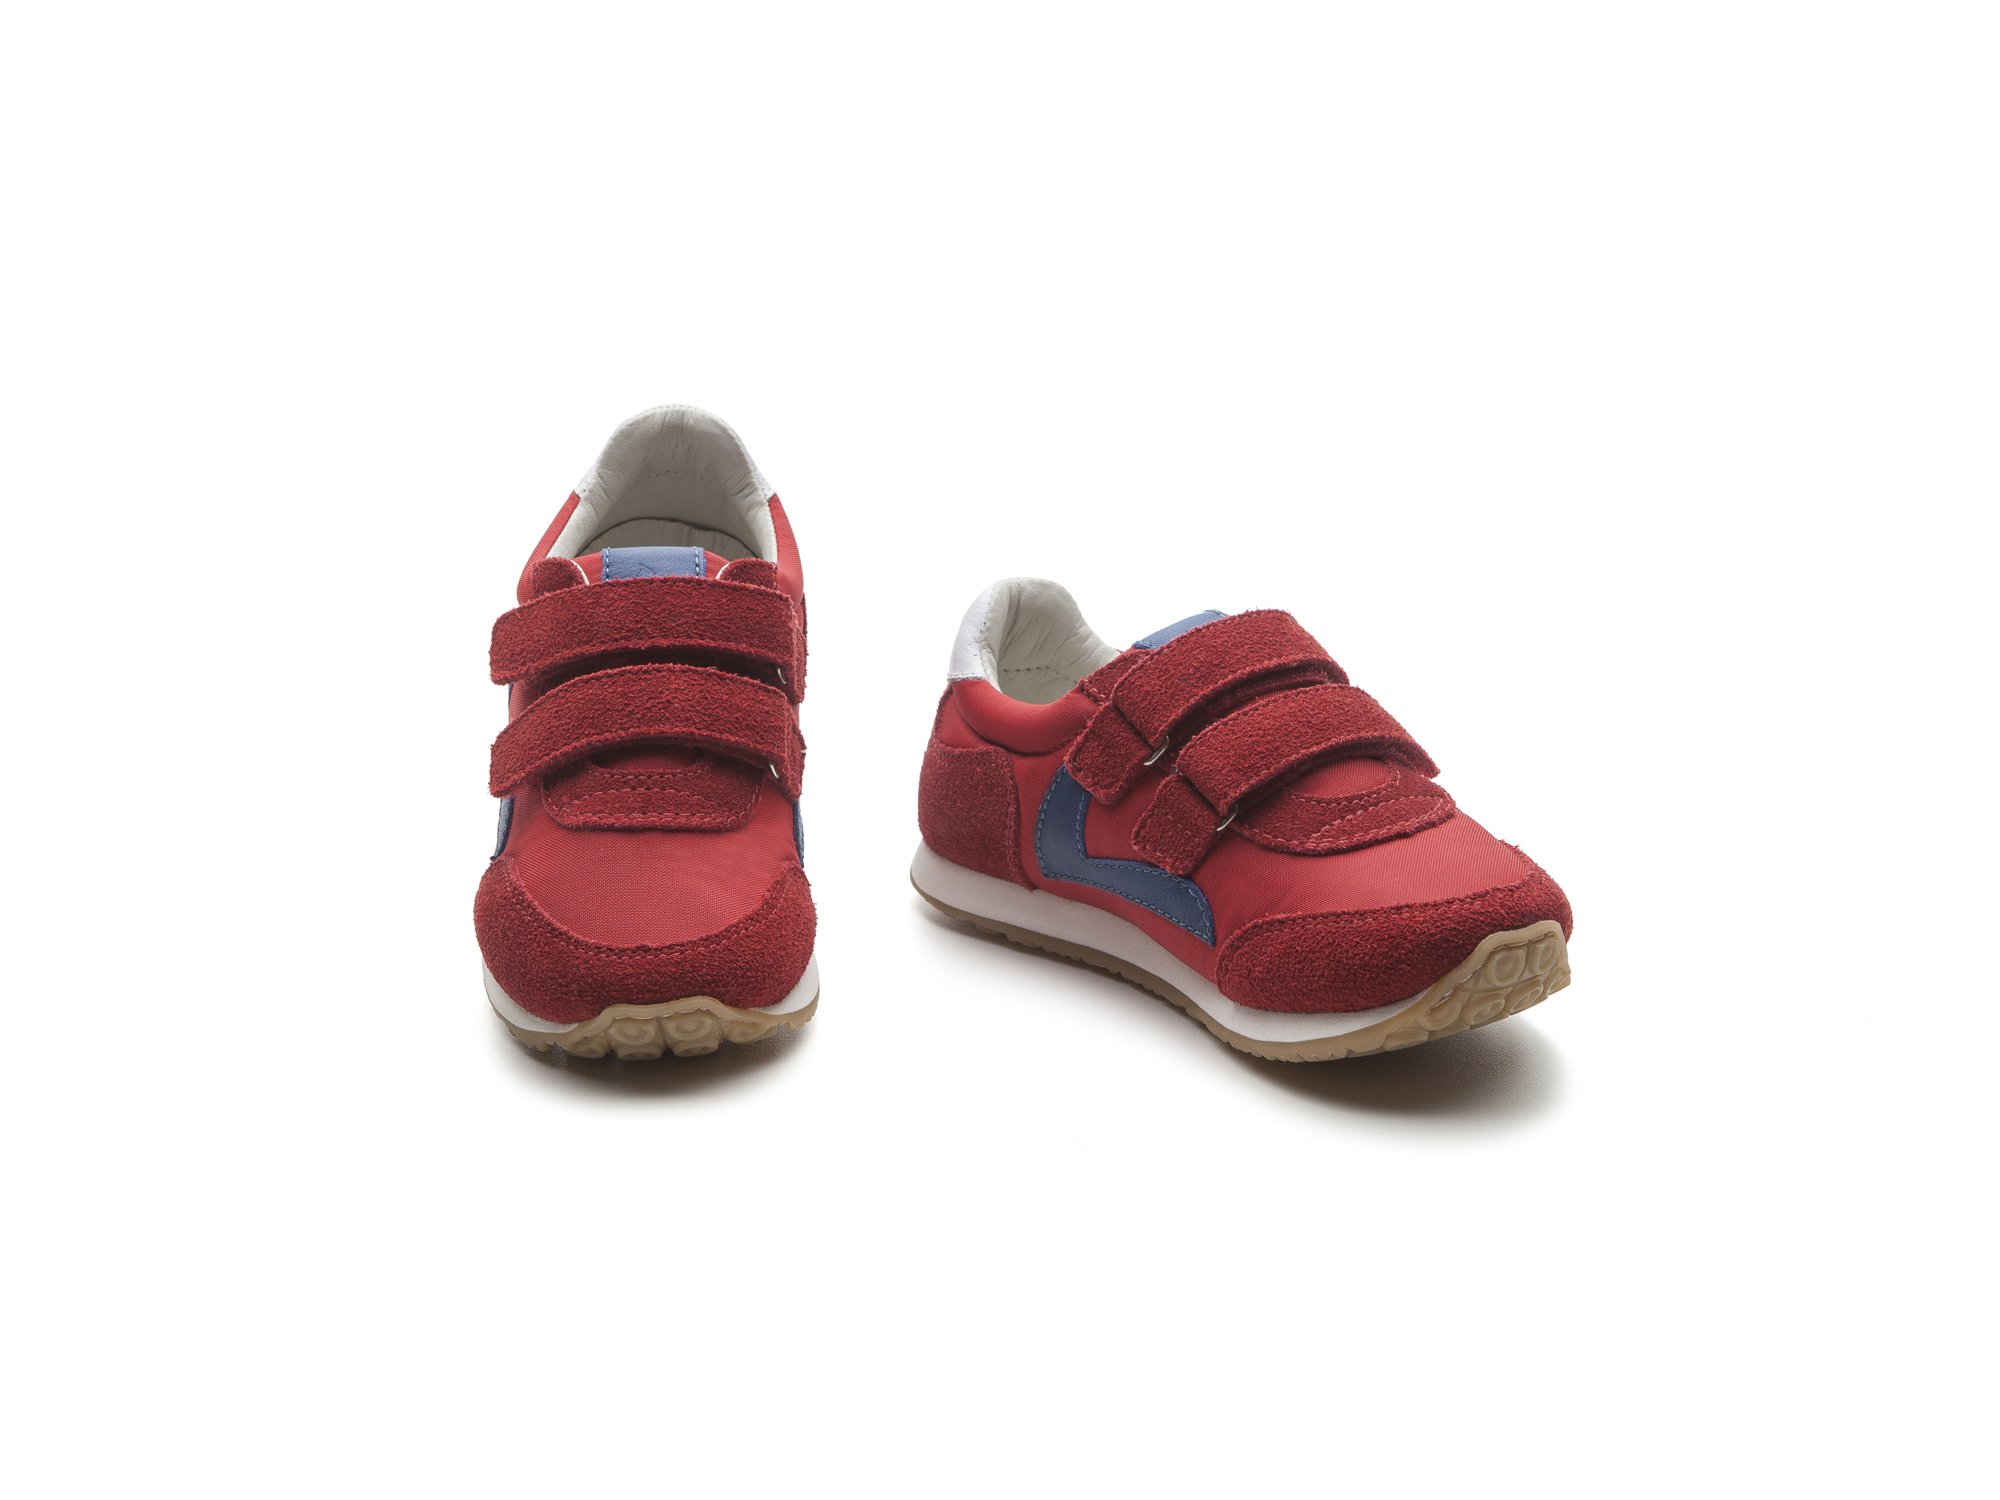 Tênis Jump Red Nylon/ Red Suede Junior 4 à 8 anos - 1